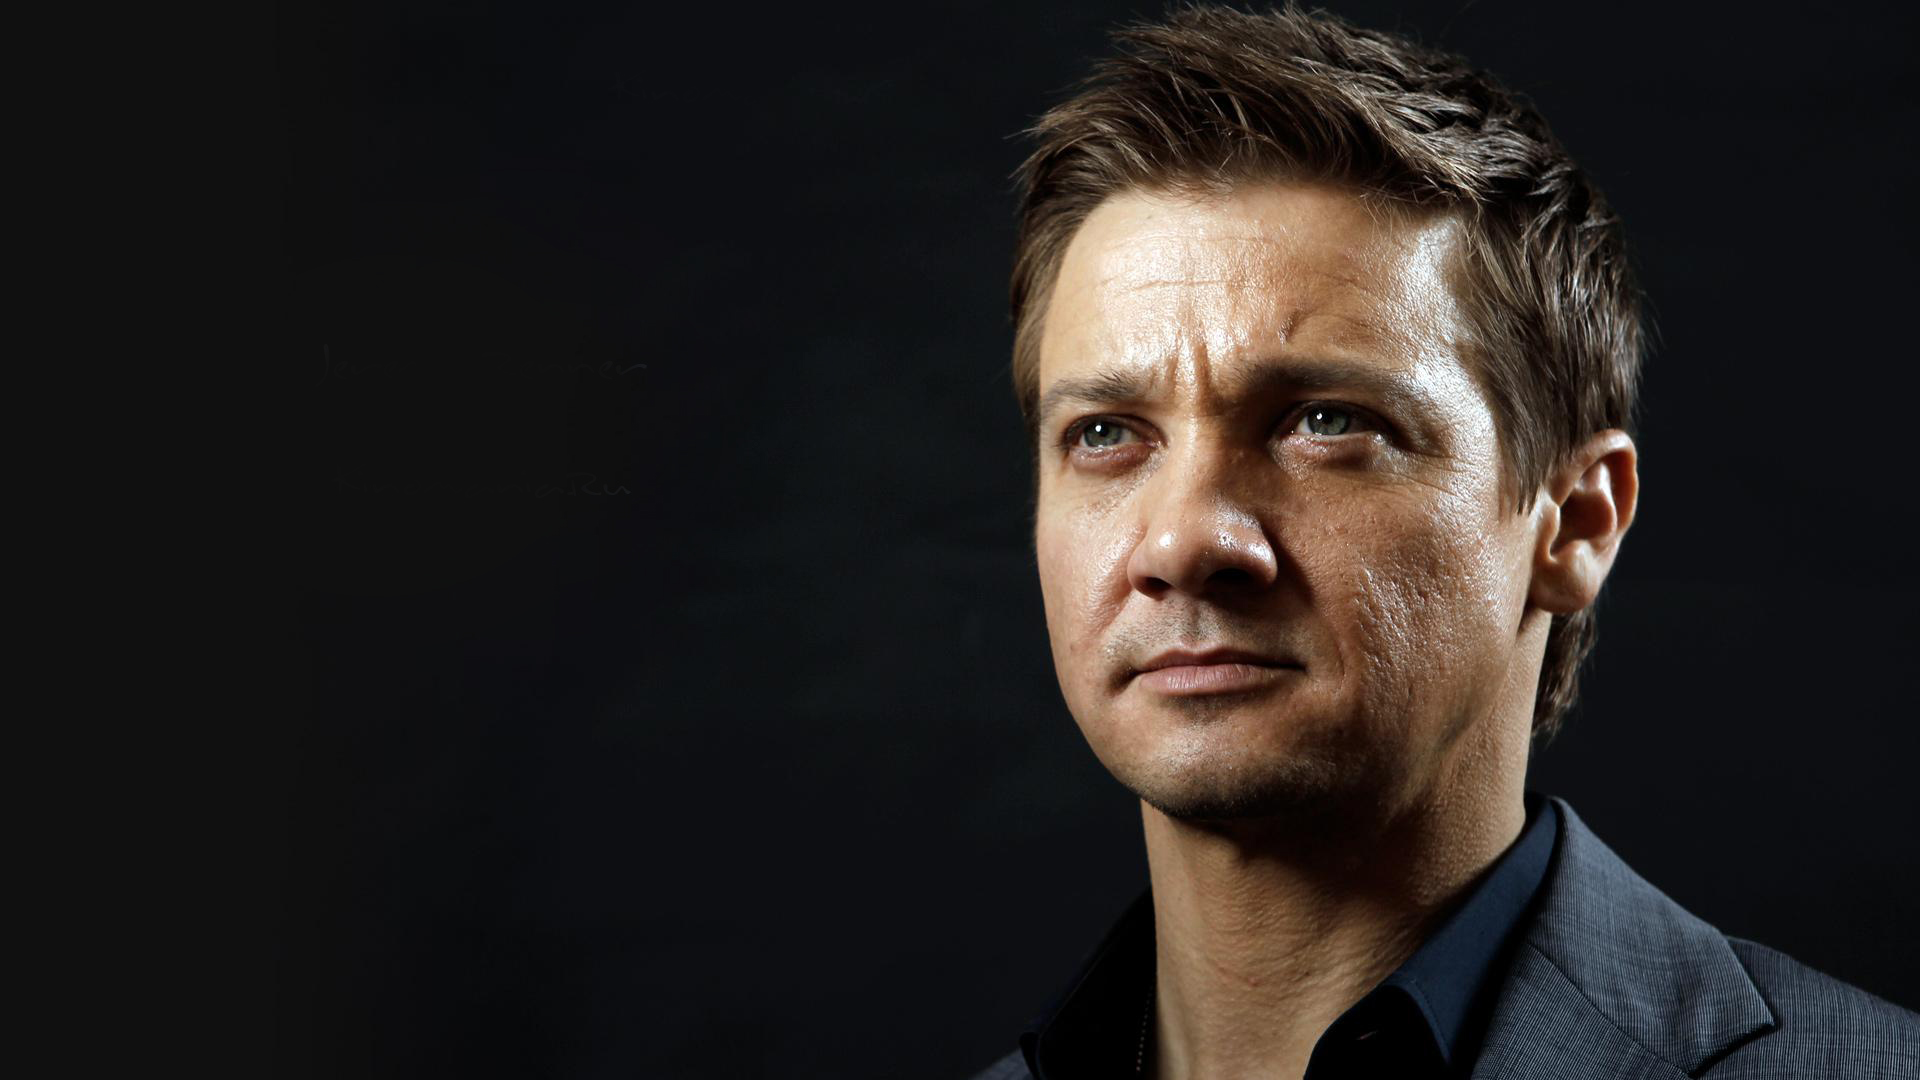 Jeremy-Renner-Wiki-Biography-Age-Height-Weight-Profile-Body Measurement